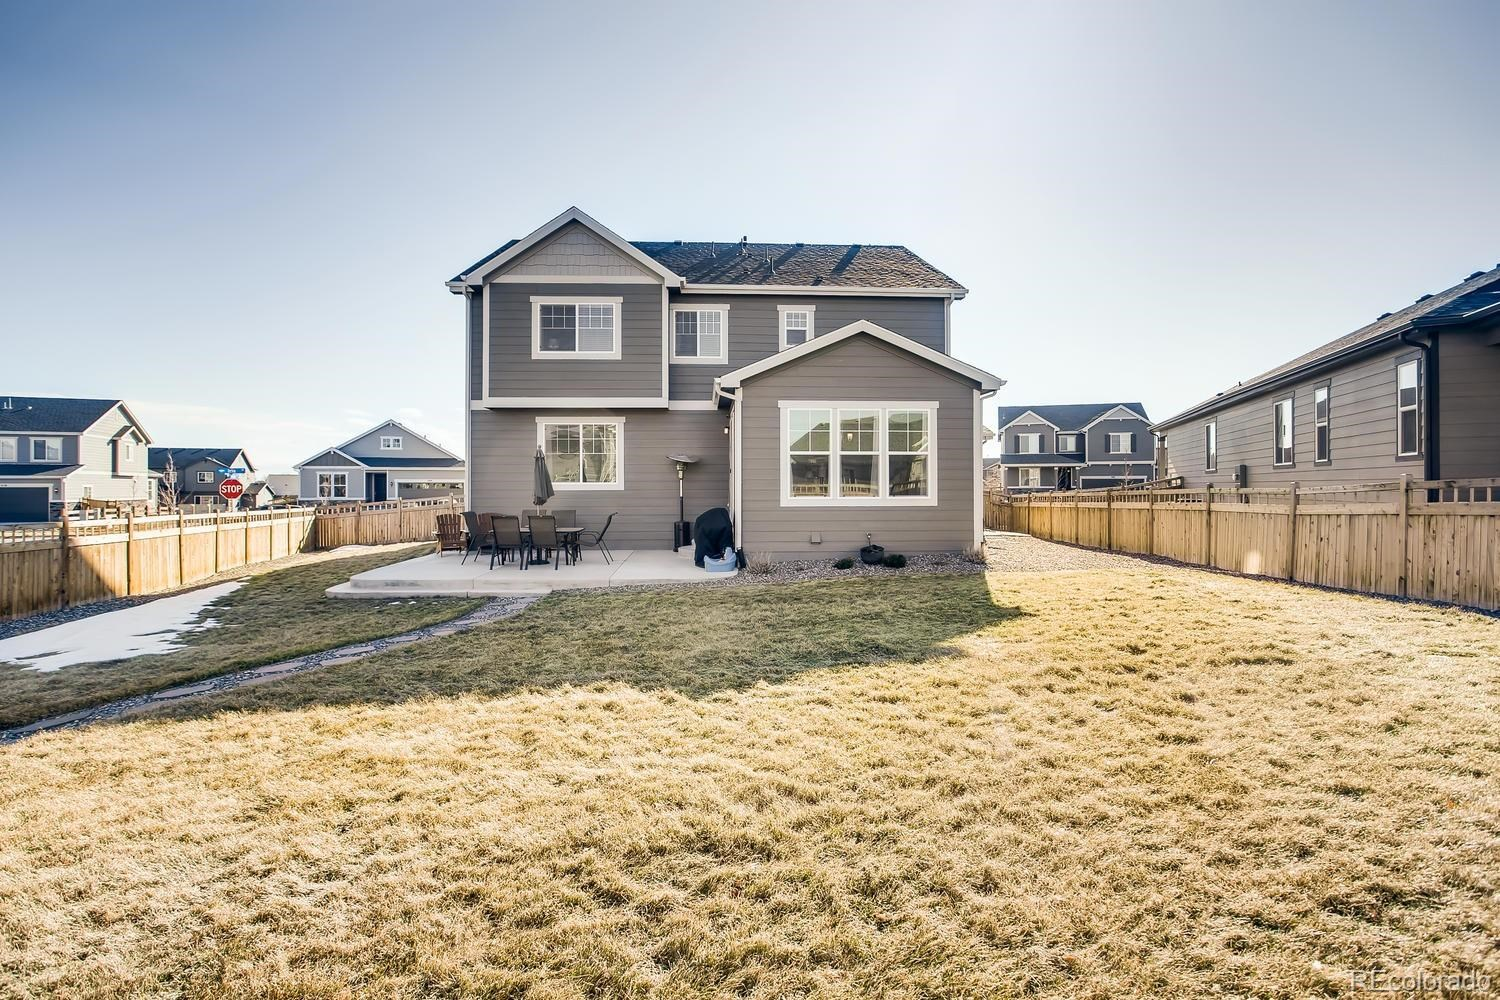 MLS# 4909159 - 27 - 483 Iris Street, Brighton, CO 80601